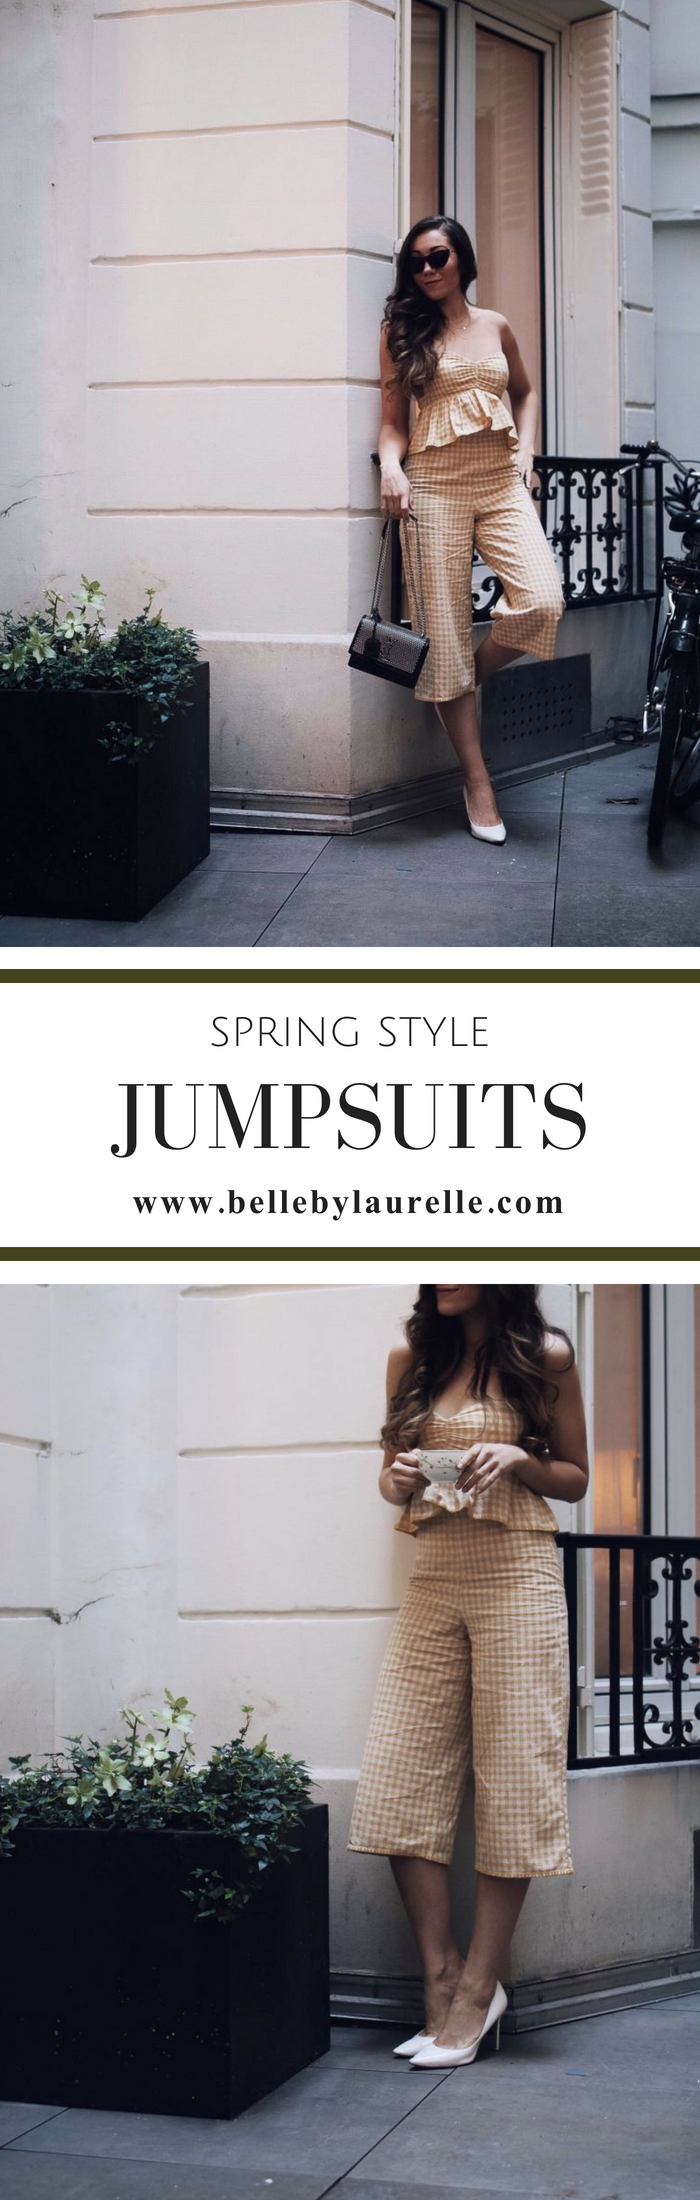 SPRING STYLE JUMPSUITS Belle by Laurelle